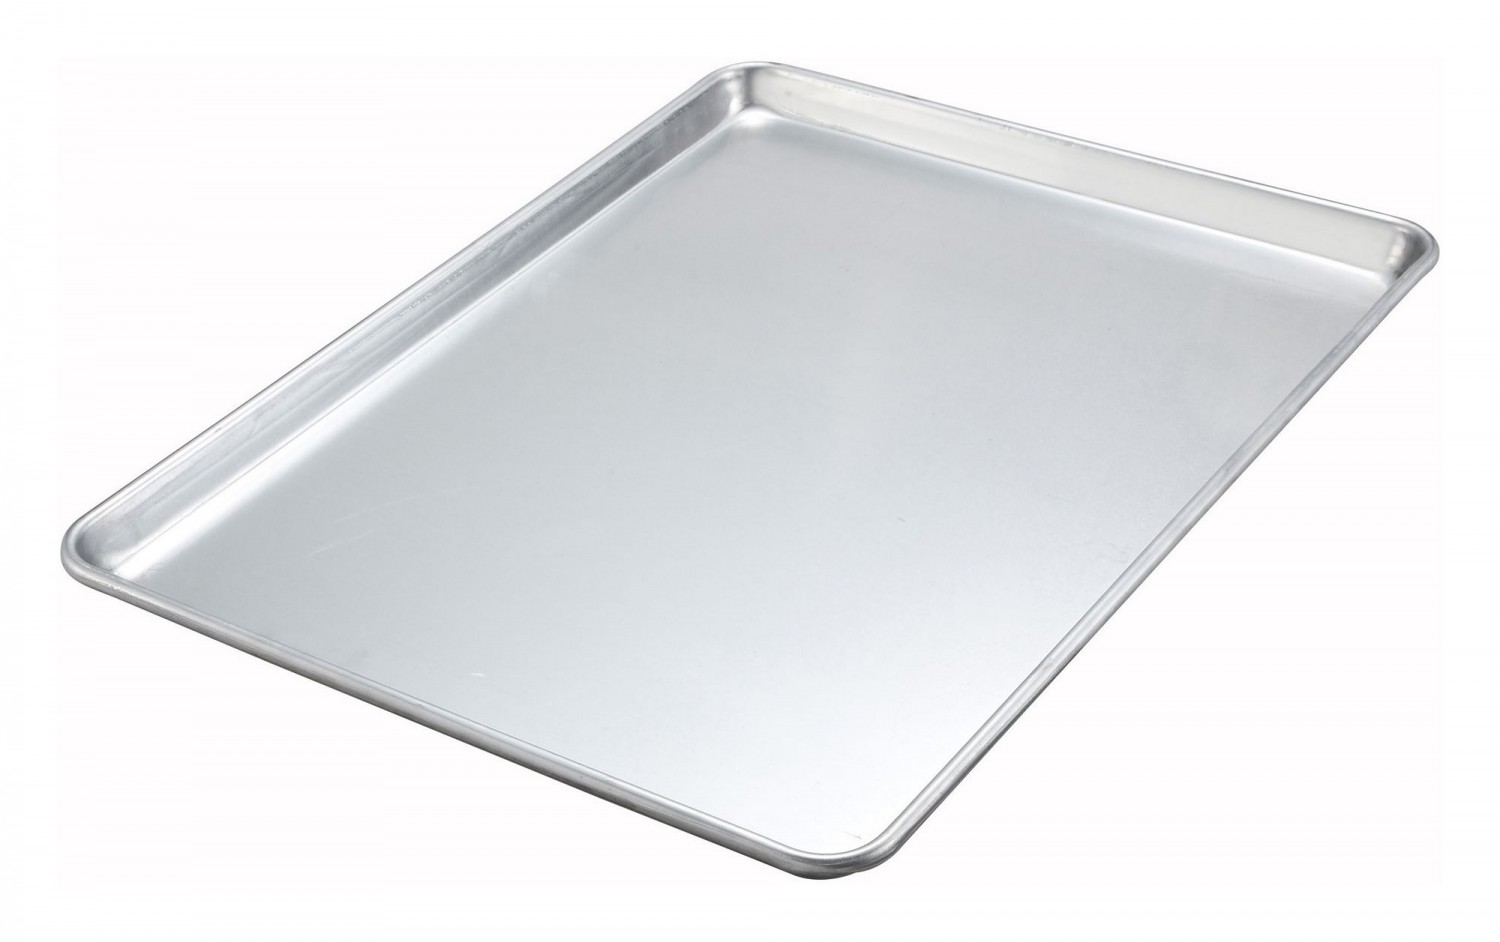 Winco ALXP-1622 Aluminum Sheet Pan 16